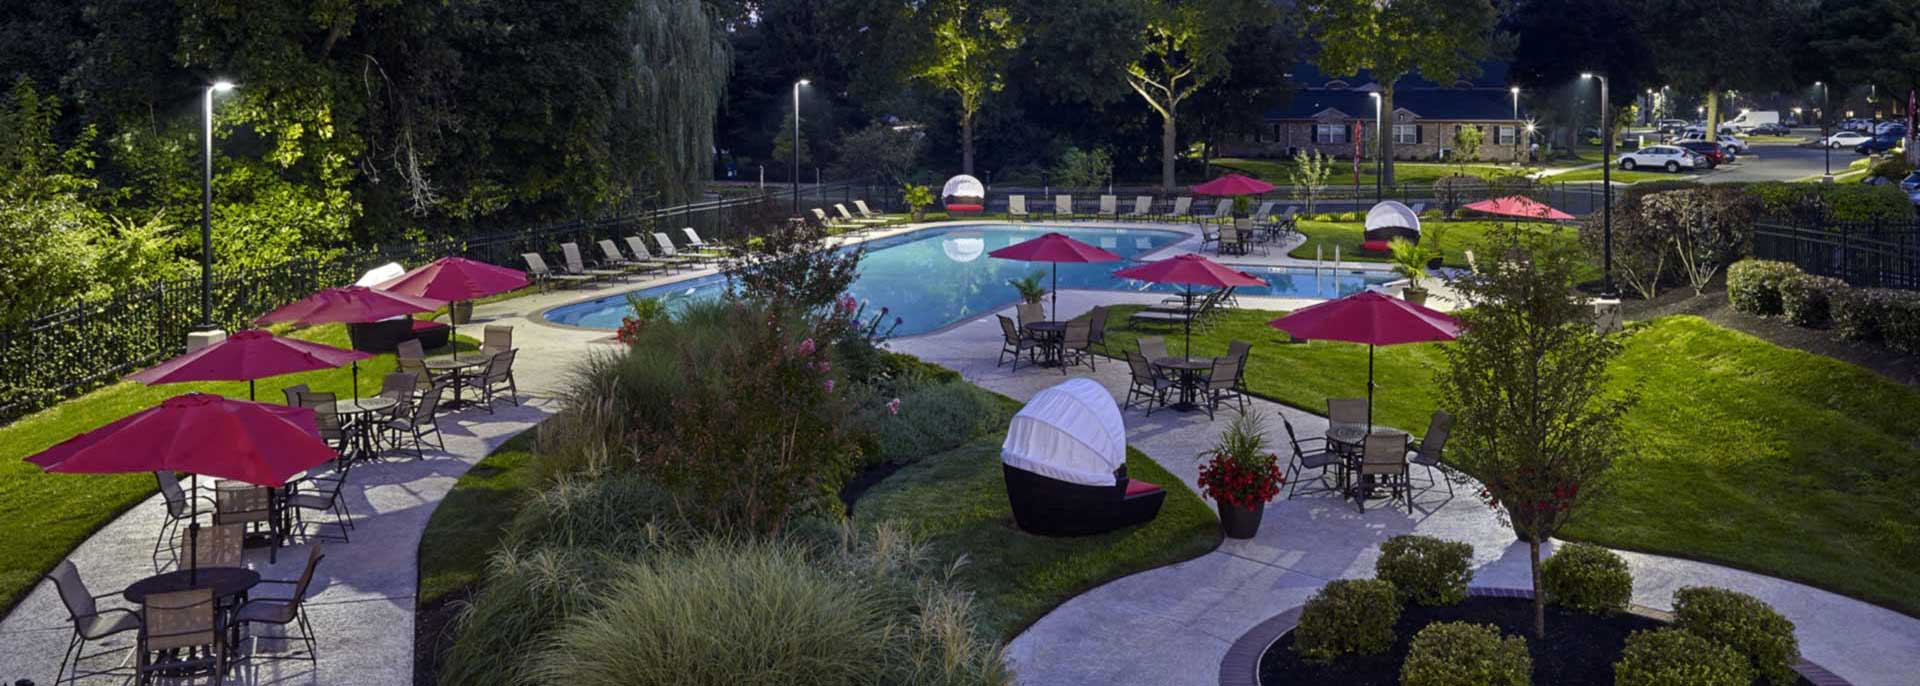 Willowyck Apartments in Lansdale, PA pool and outdoor lounge area